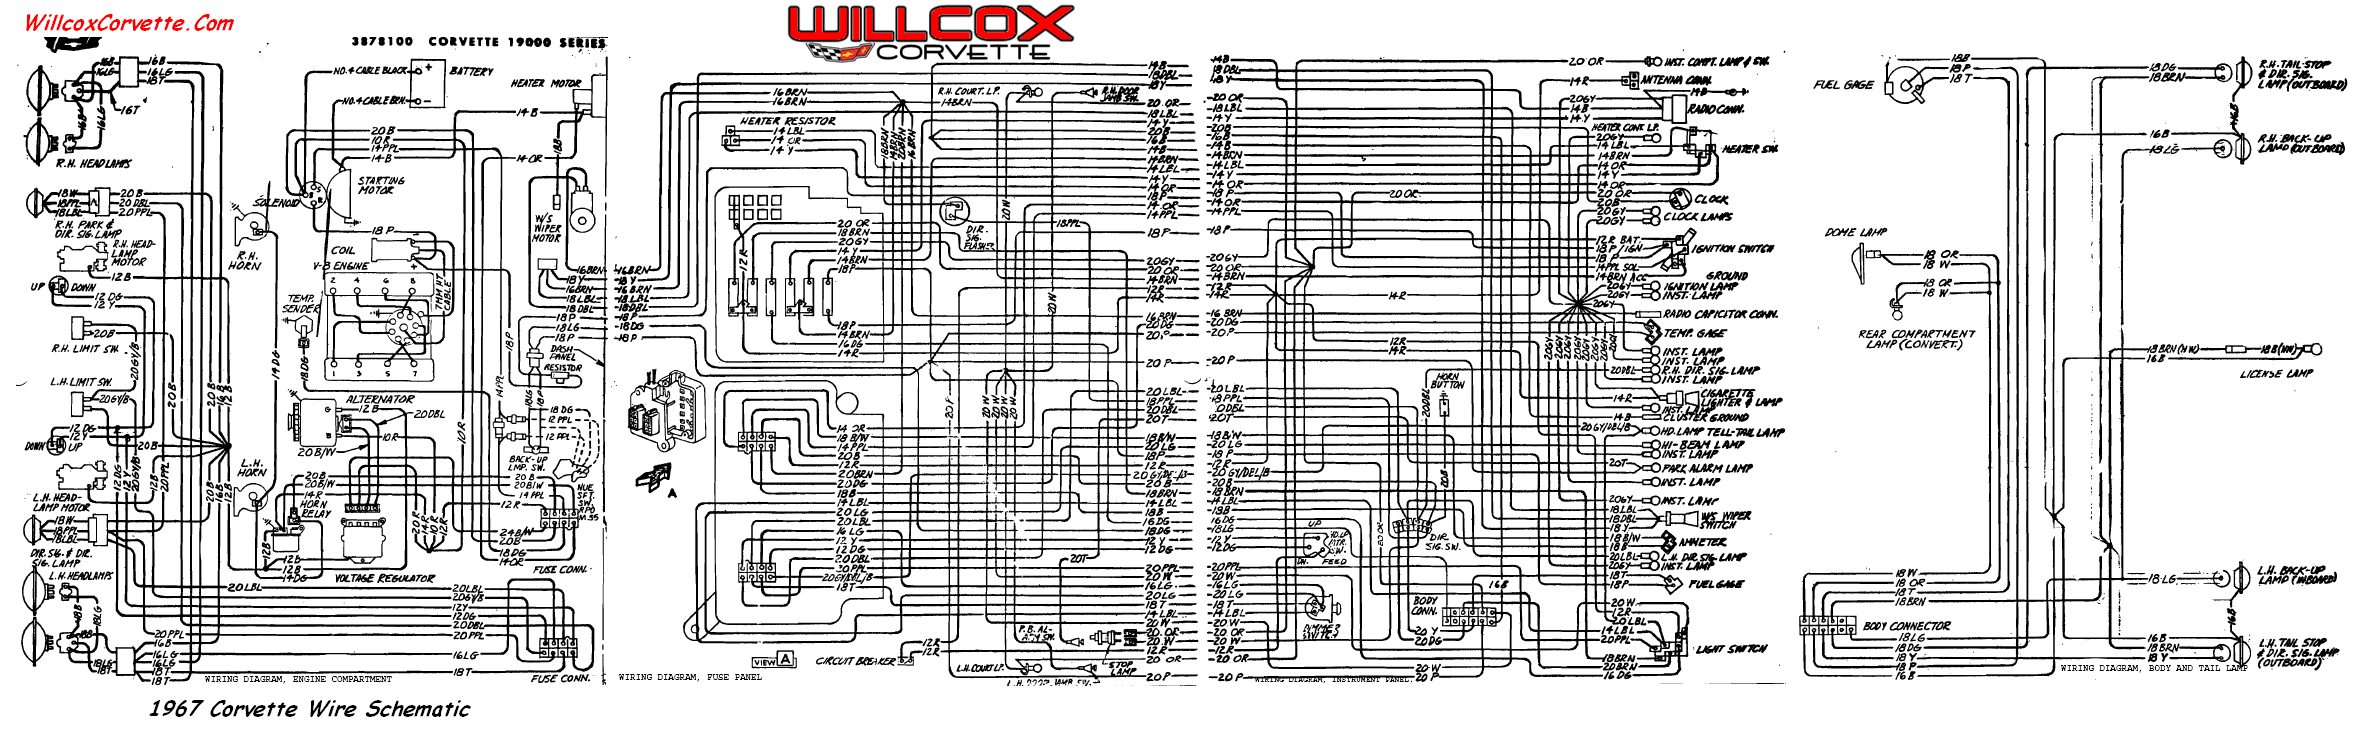 67 wire schematic for tracing wires wiring diagram for 1966 corvette readingrat net 66 Corvette at highcare.asia